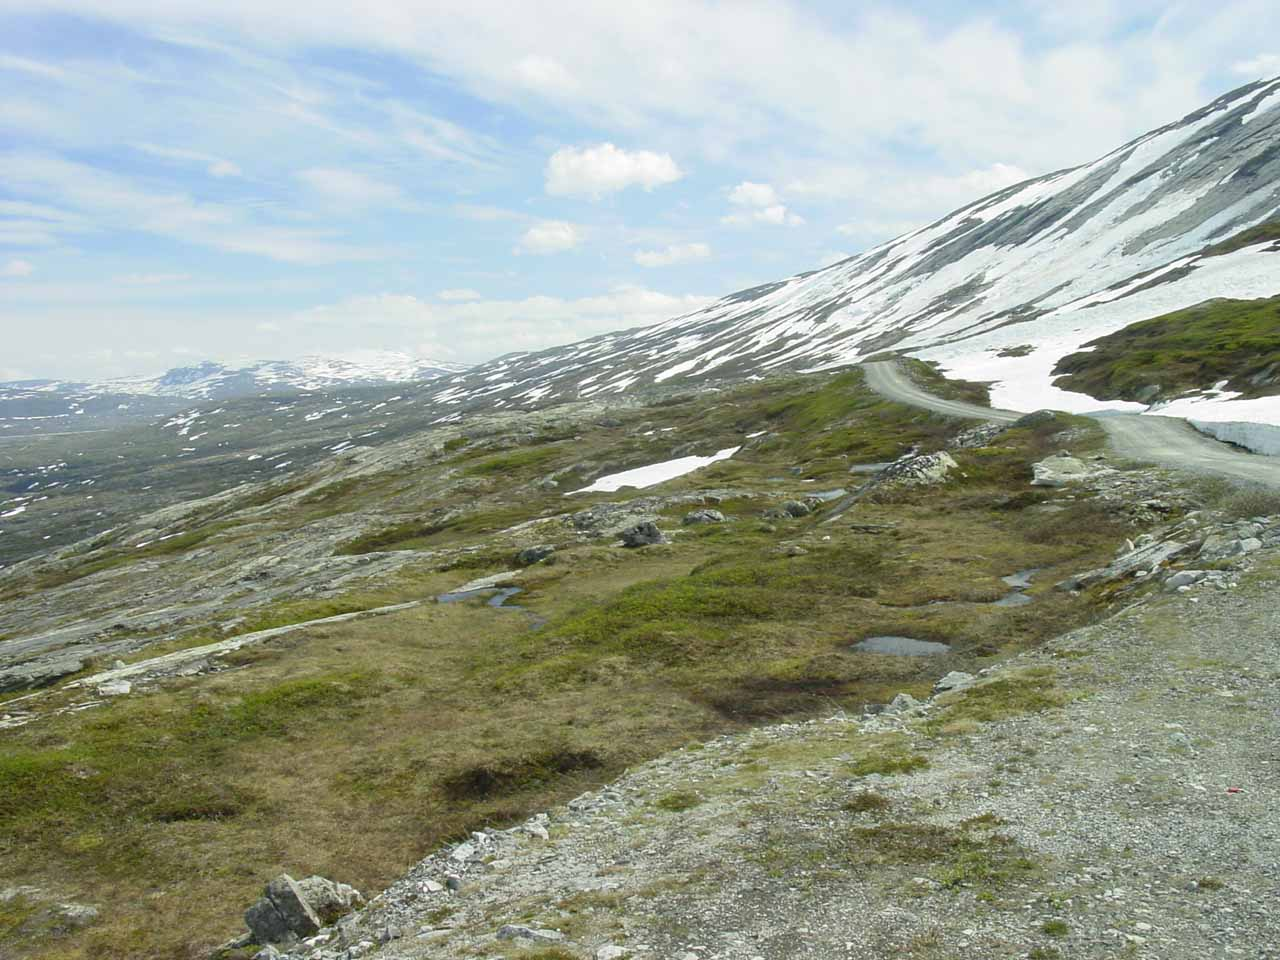 When Julie and I got this far into Aursjøvegen, we decided to turn back since we figured we wouldn't be seeing any more waterfalls belonging to Eikesdalen